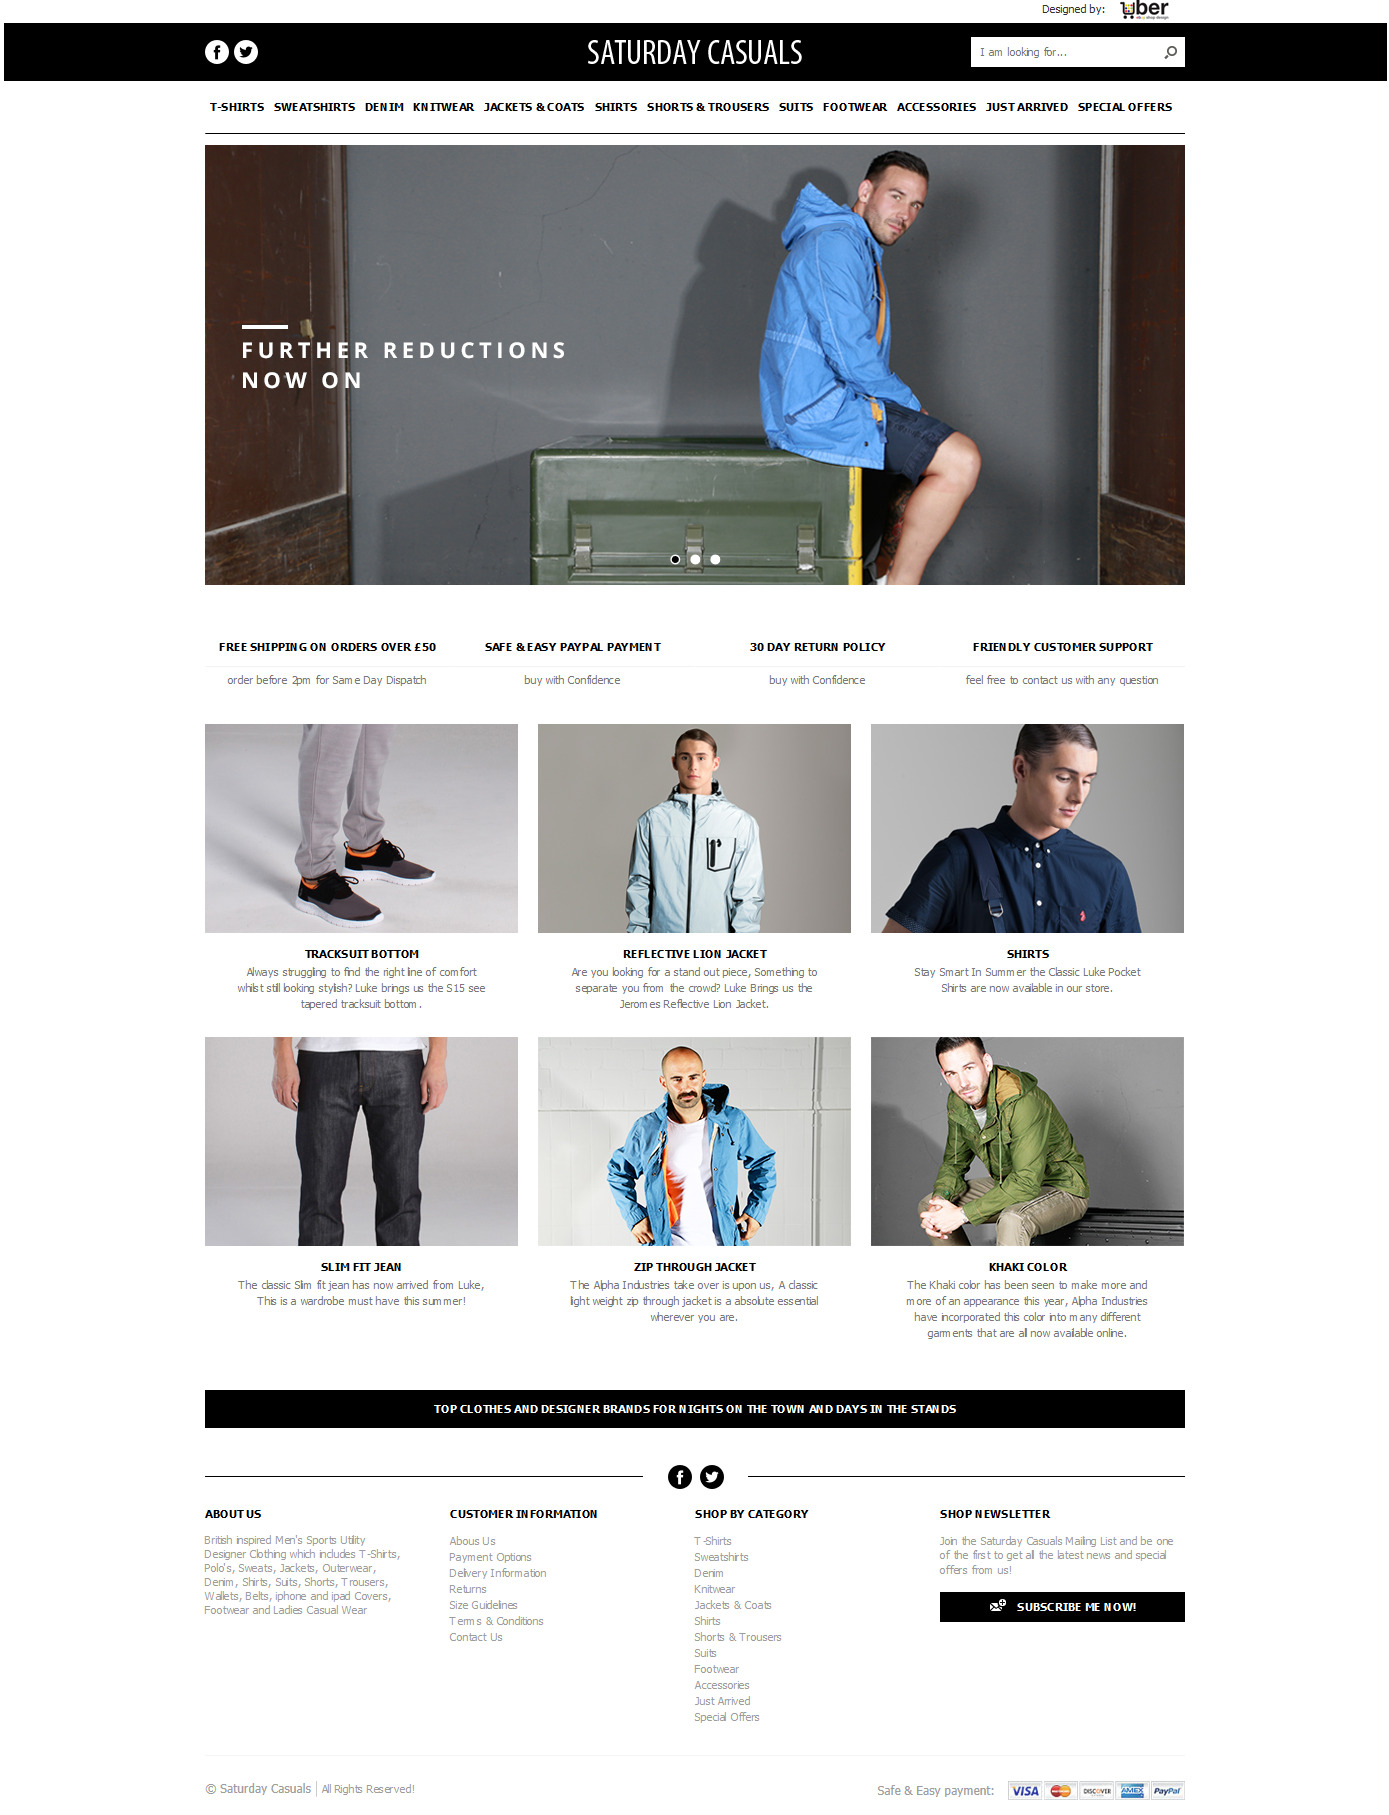 Saturday casuals uber ebay shop design for Homepage shop